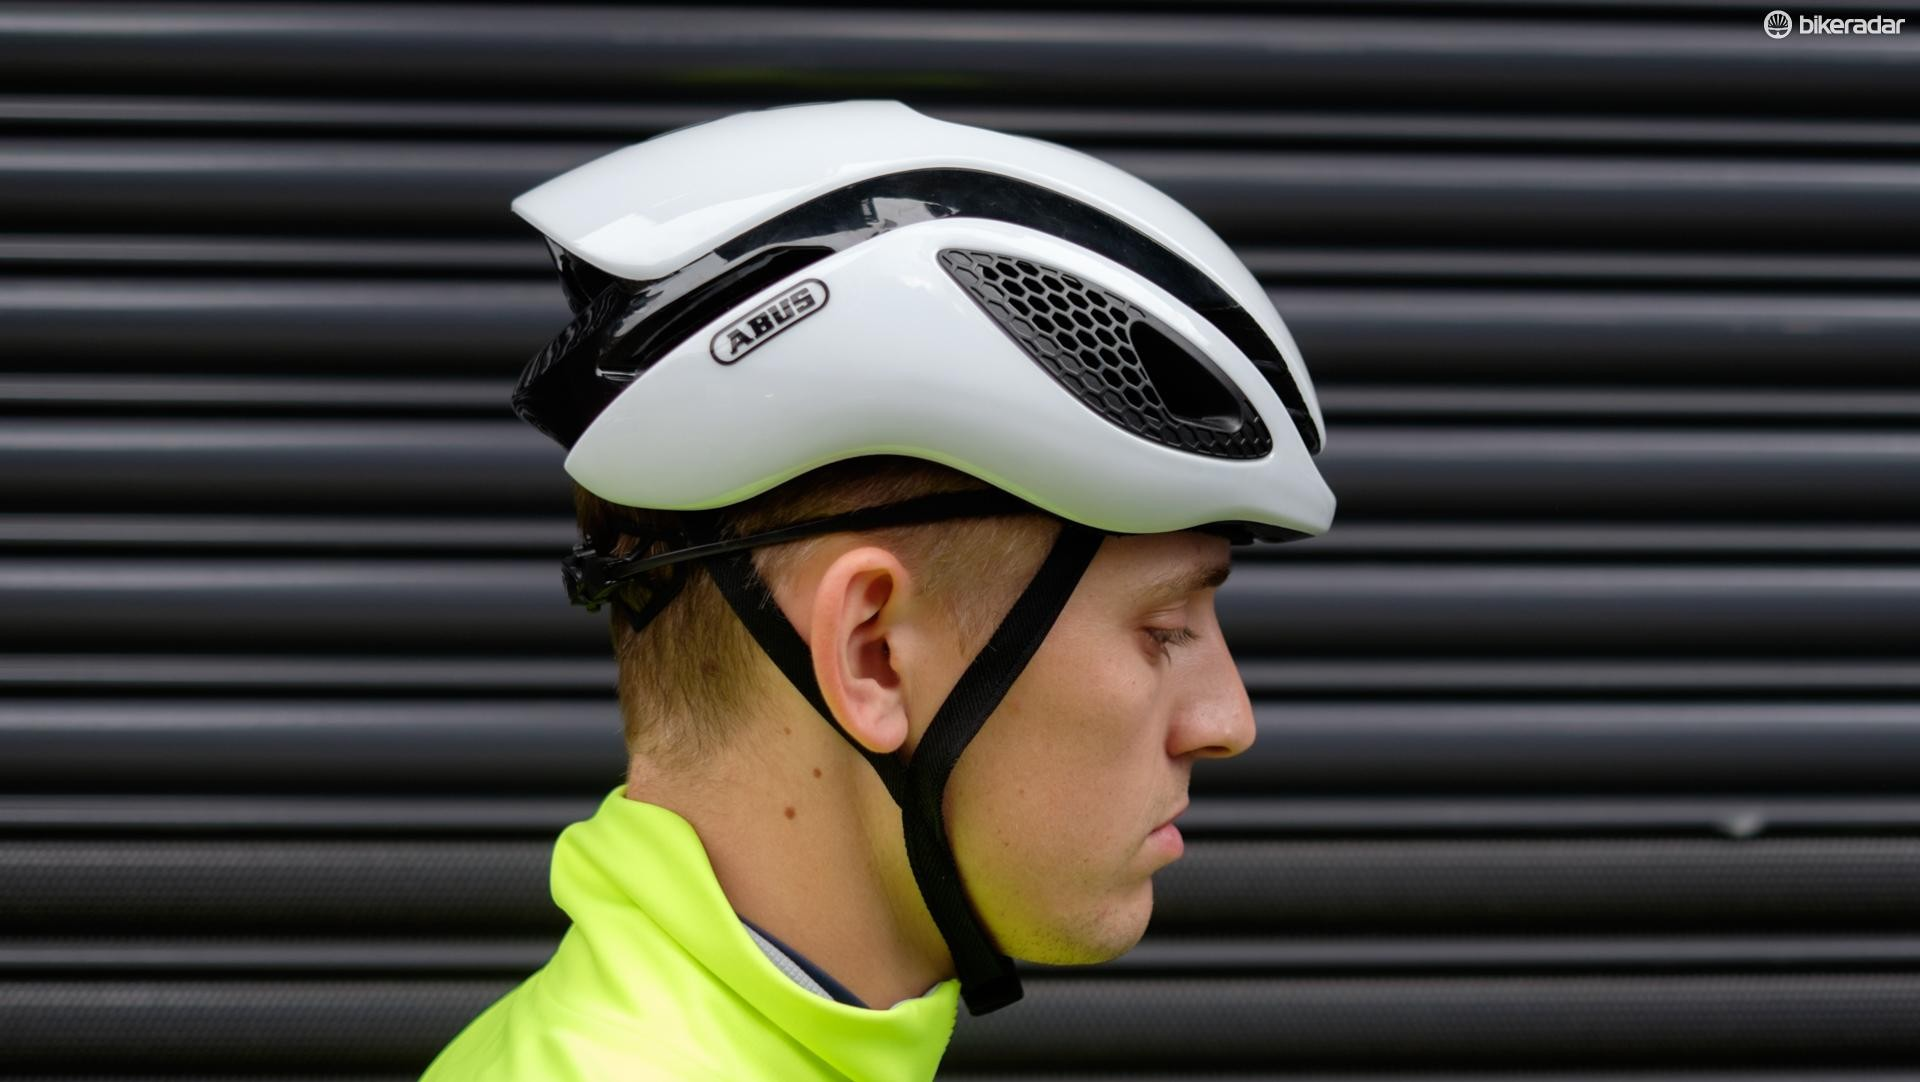 The GameChanger is designed to have good aerodynamic performance in a variety of positions